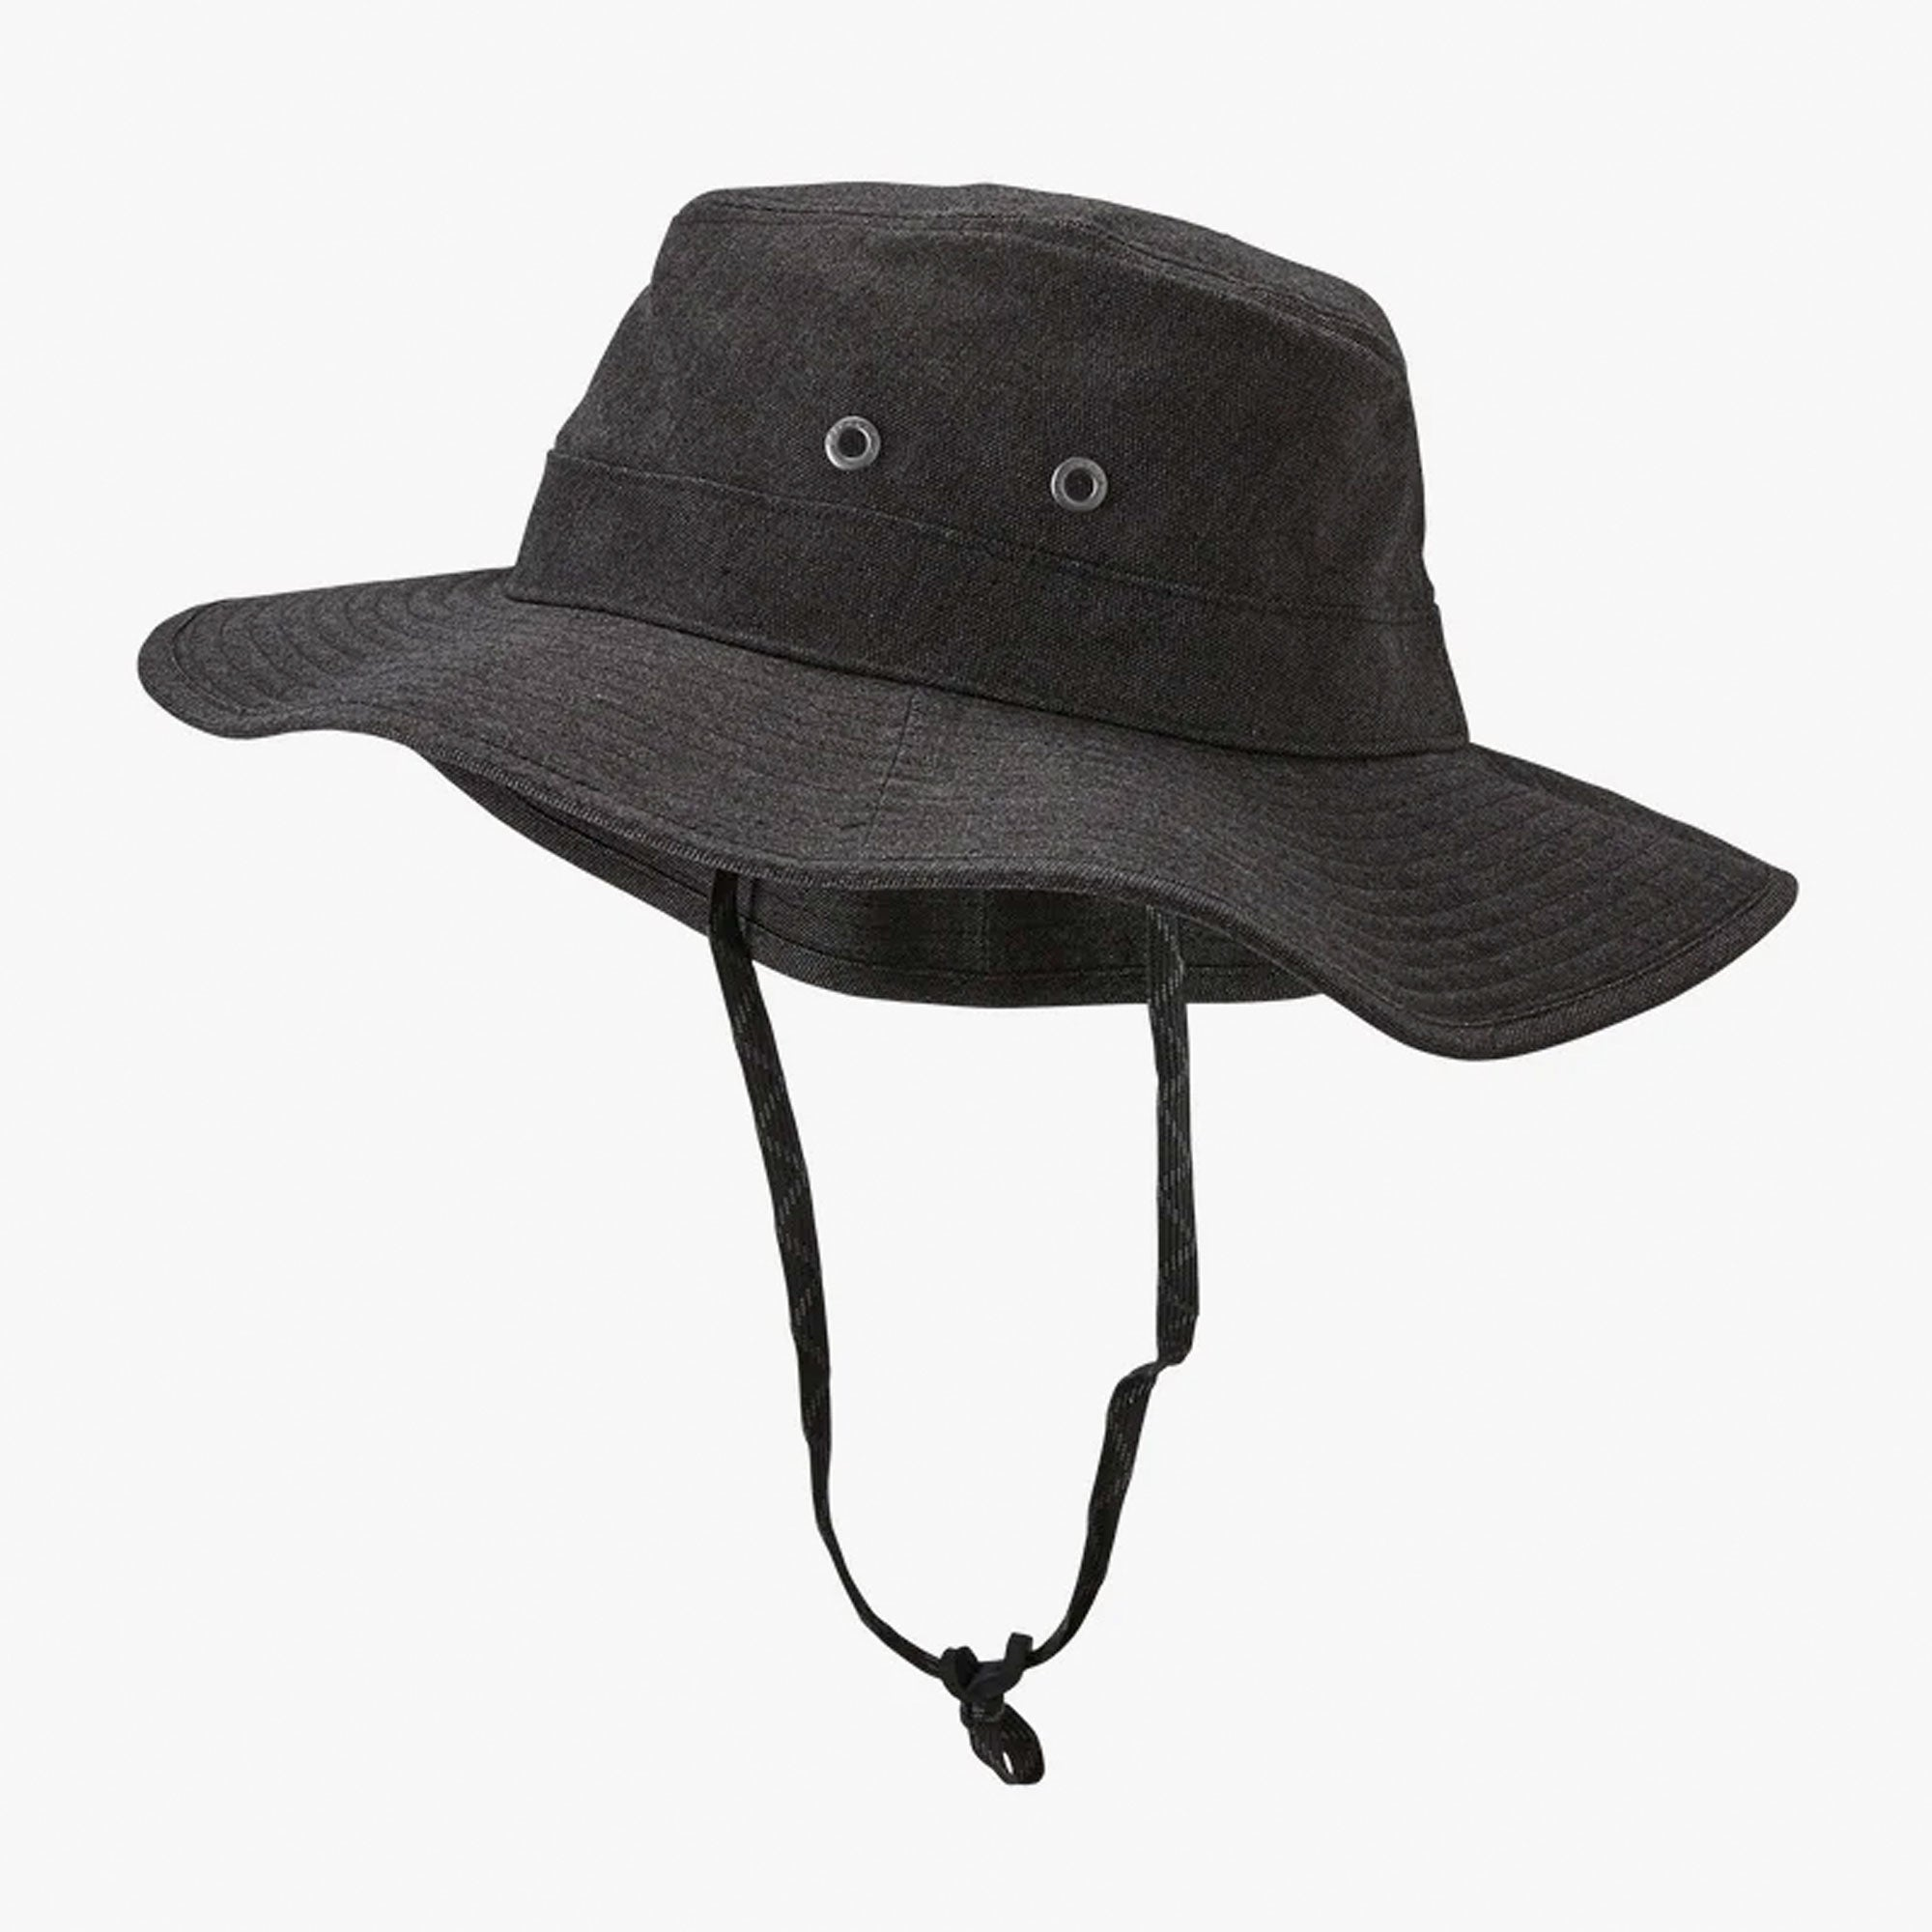 Patagonia The Forge Men's Bucket Hat